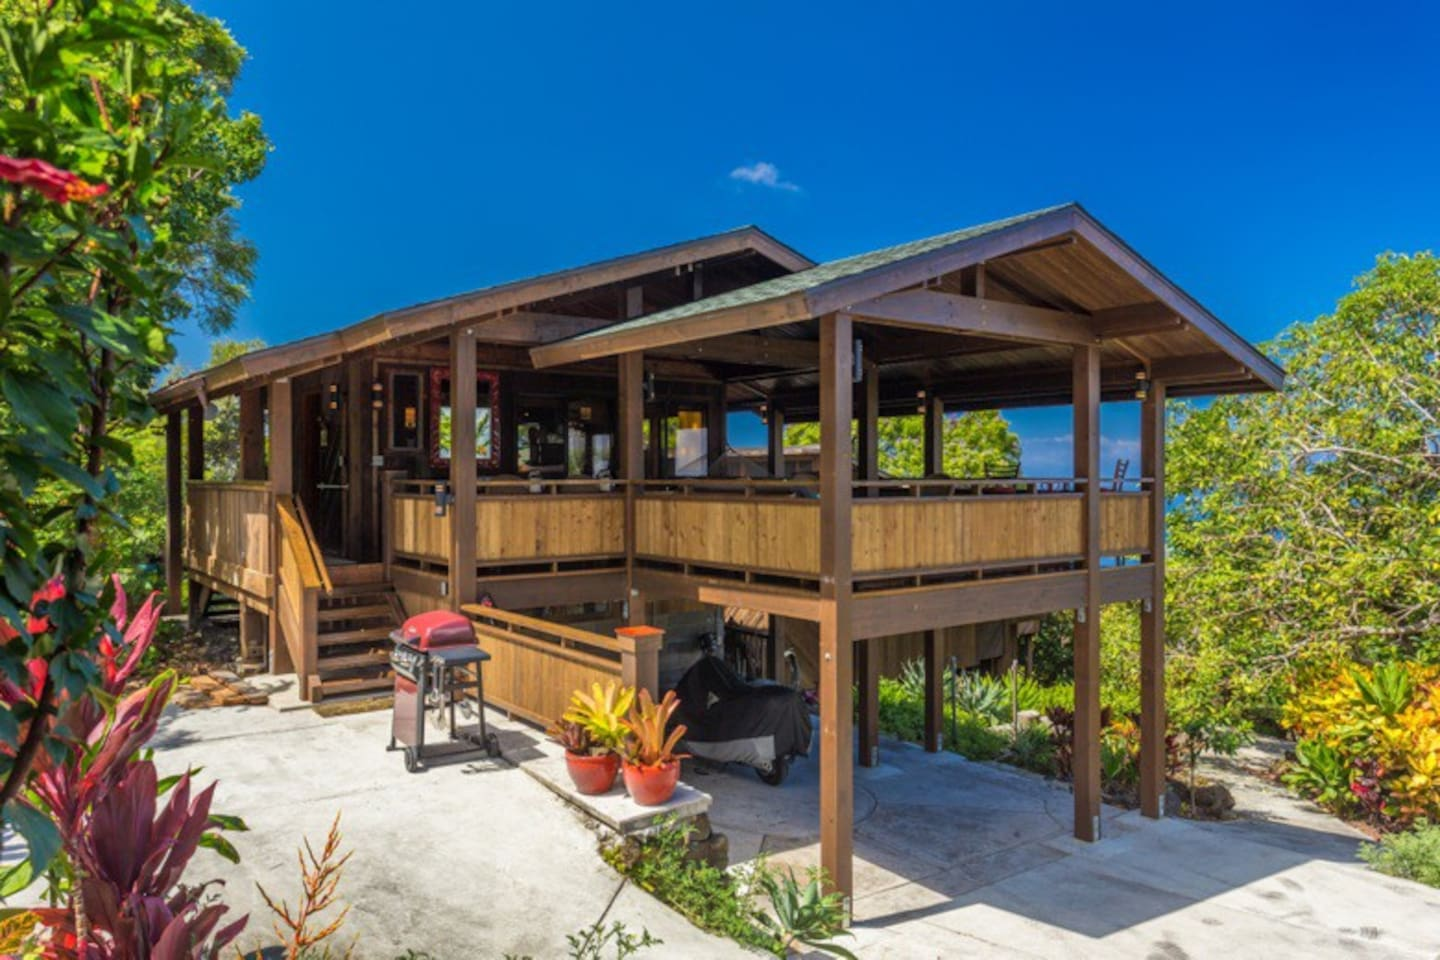 The cottage, with lanai in front and convenient barbecue area adjacent.